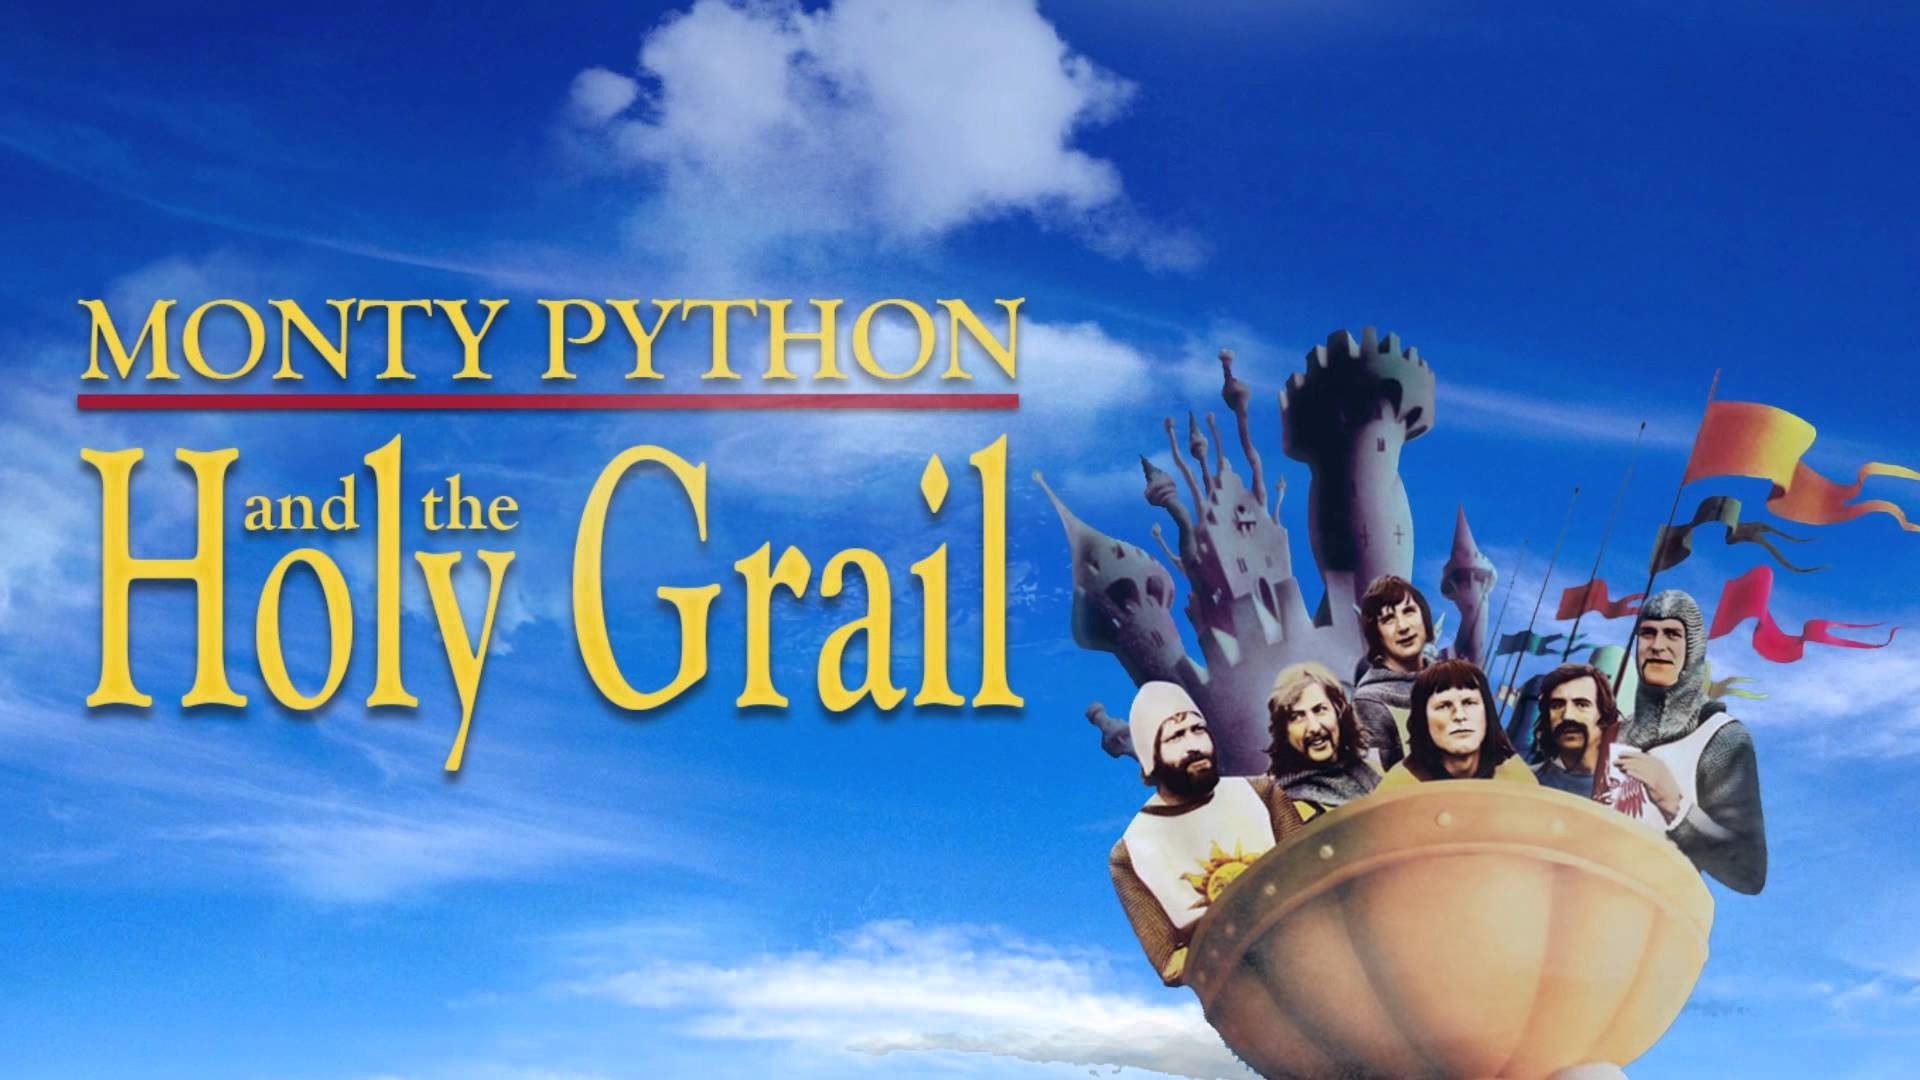 Poster Monty Python And The Holy Grail NO Sound